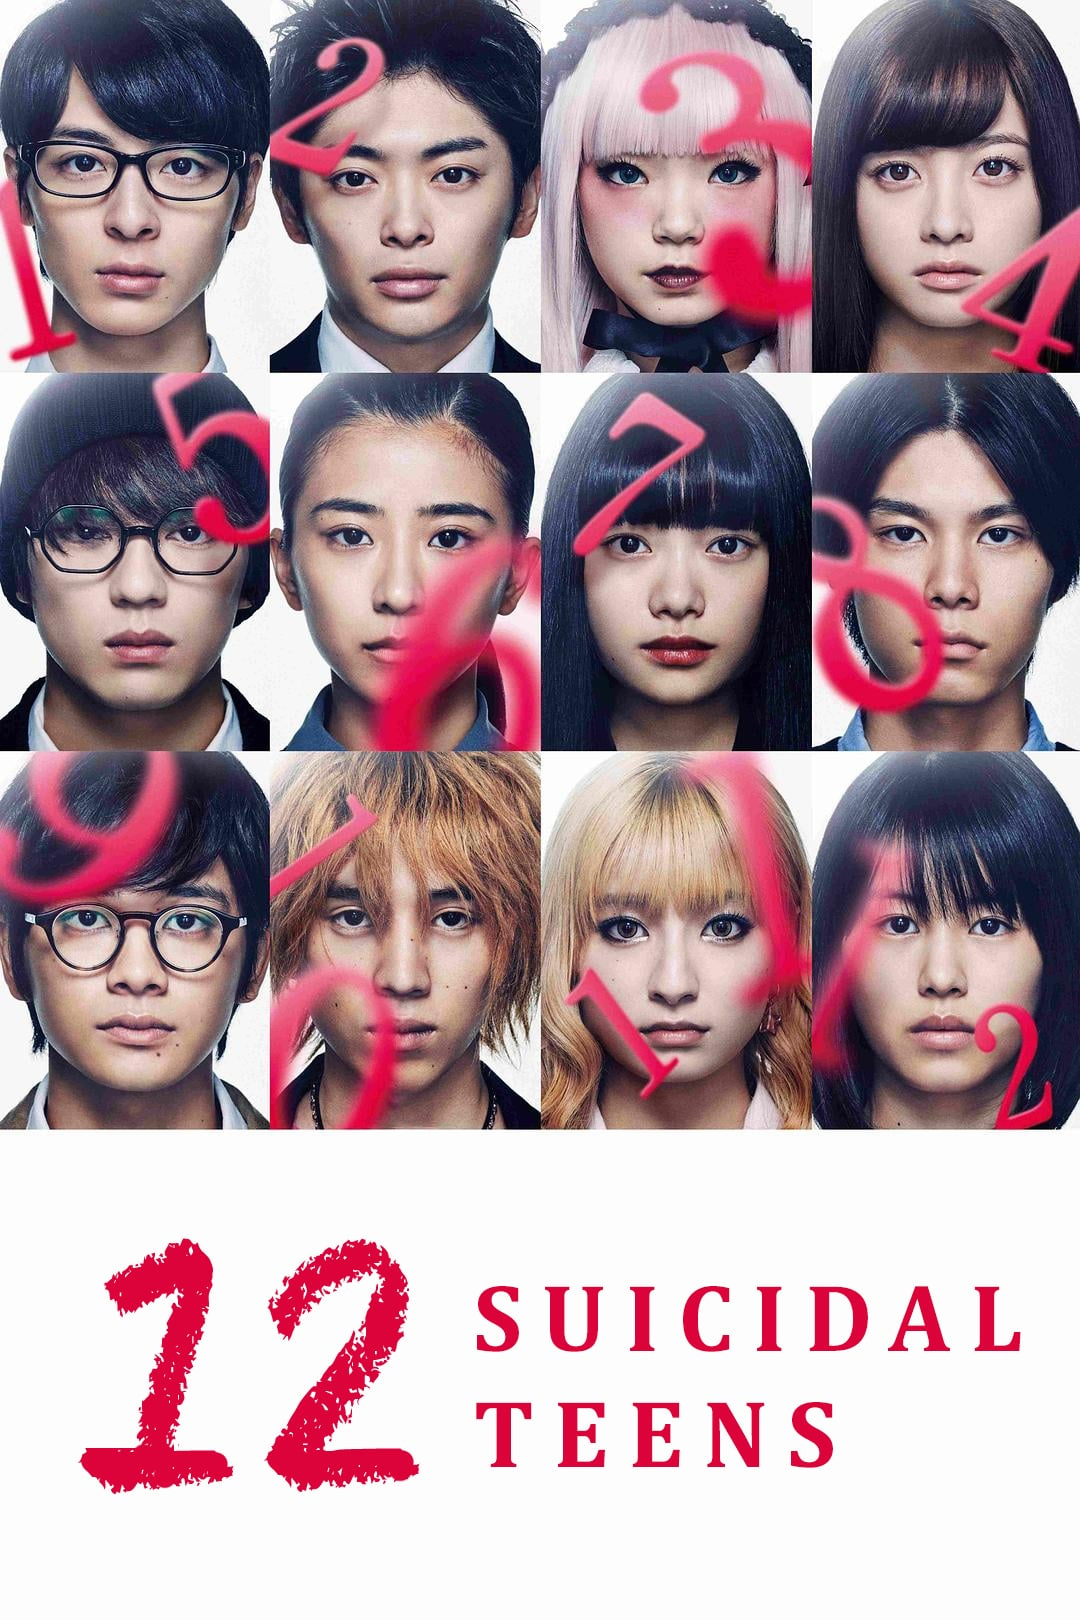 12 Suicidal Teens (2019) Subtitle Indonesia